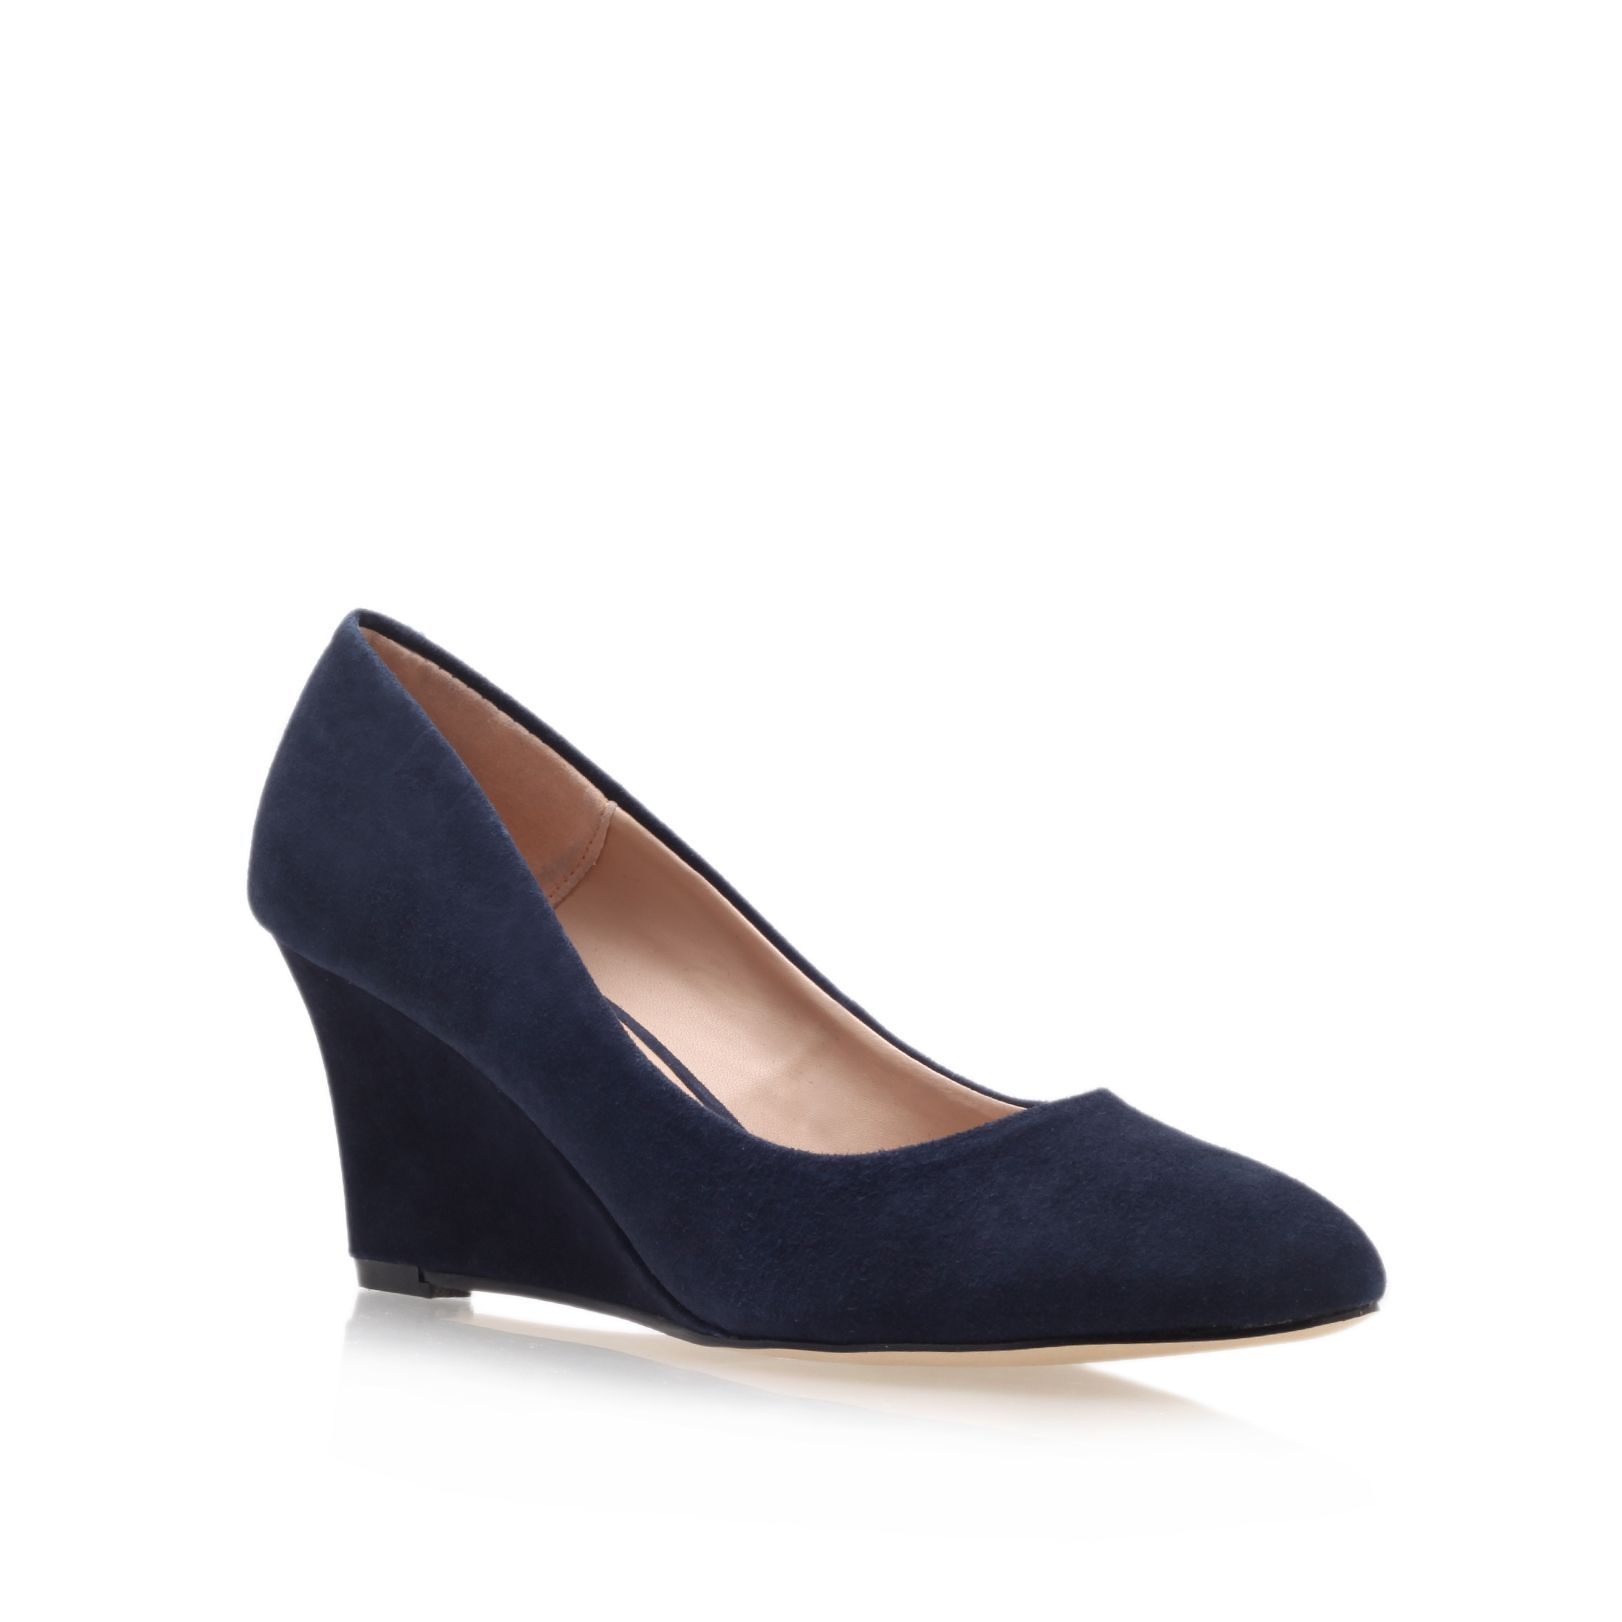 Navy Blue Wedge Heel Shoes - Boot Hto